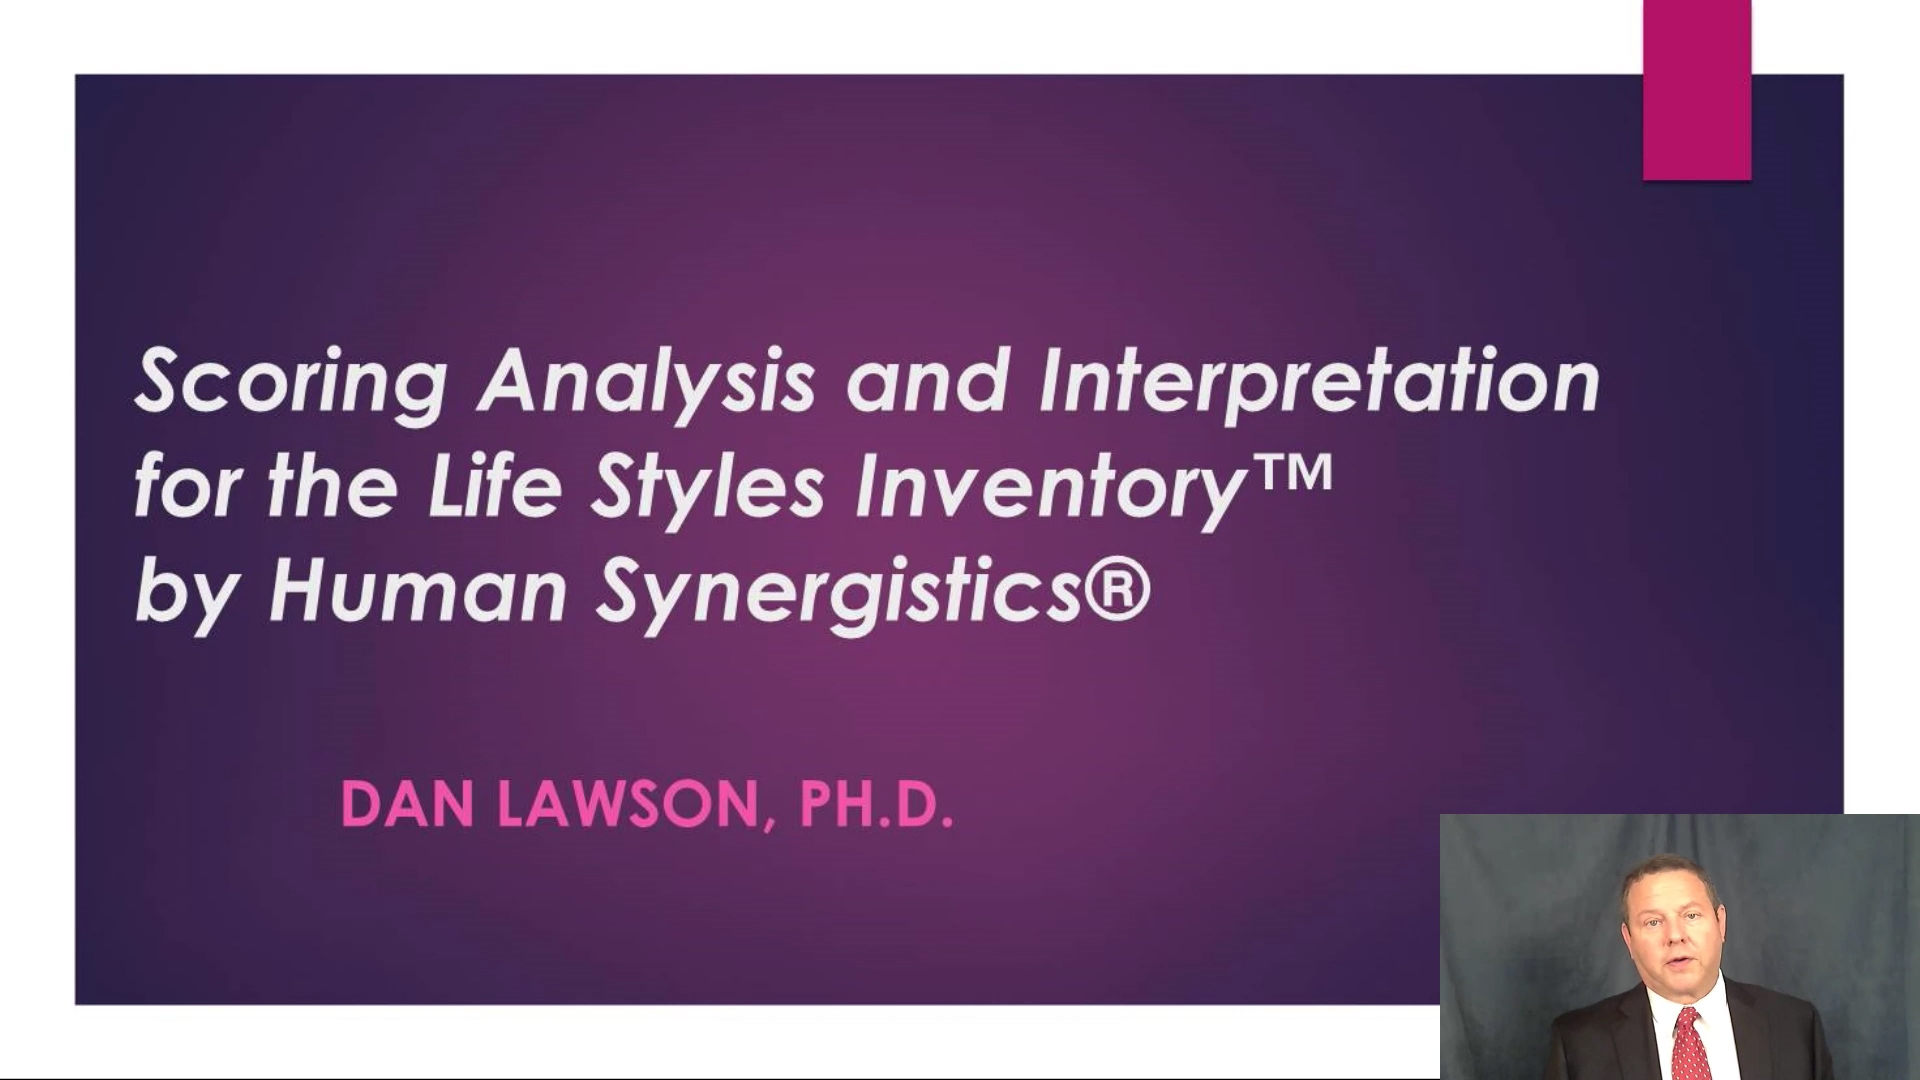 Scoring Analysis and Interpretation for the Life Styles Inventory™ by Human Synergistics®